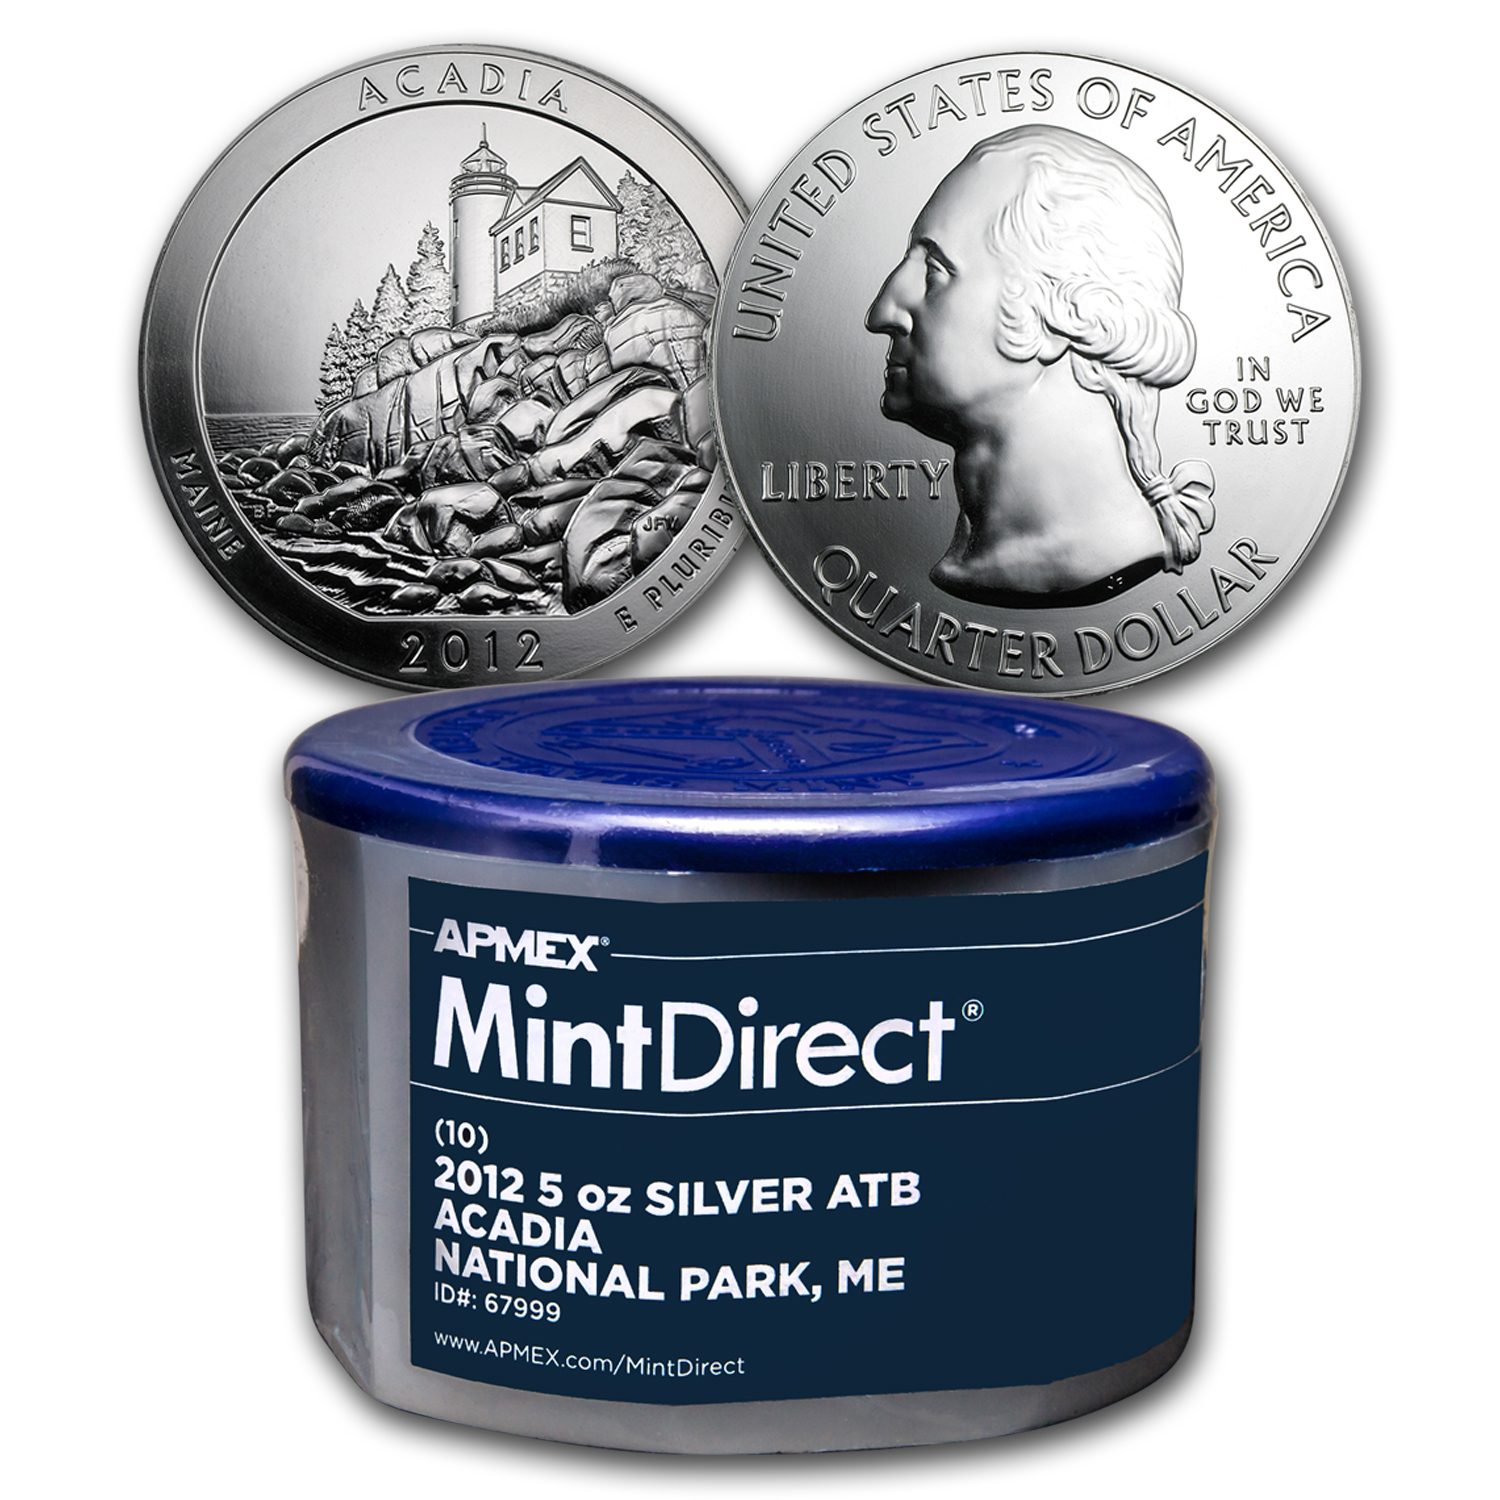 2012 5 oz Silver ATB Acadia, ME (10-Coin MintDirect® Tube)